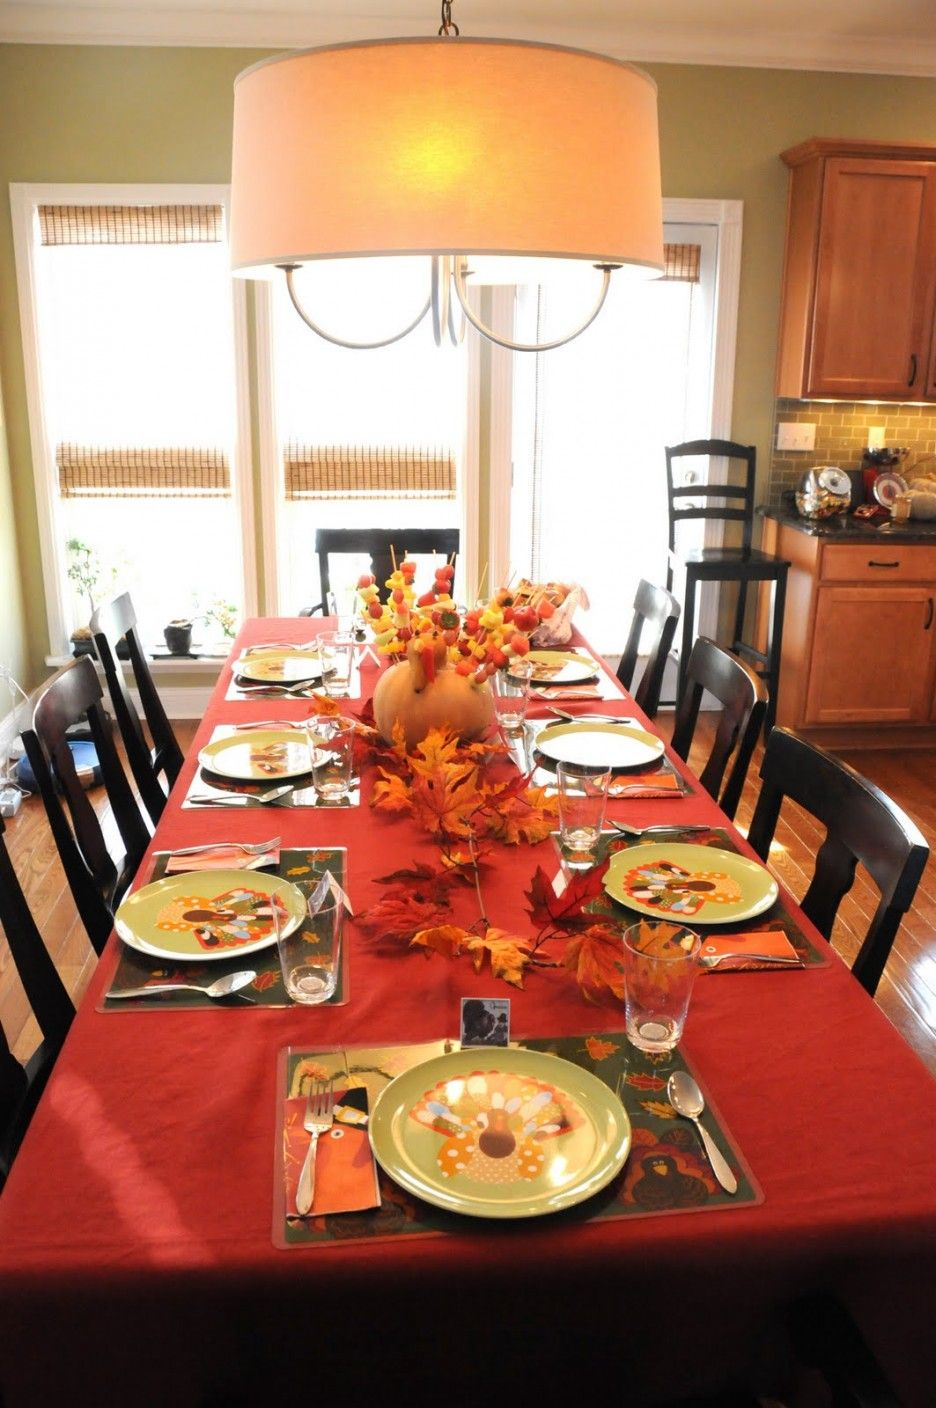 Interesting Light Fixture Option Elegant Fall Table Decorations Red Fabric Tablecloth Dining Room Table Centerpieces Fall Dining Room Thanksgiving Dining Room